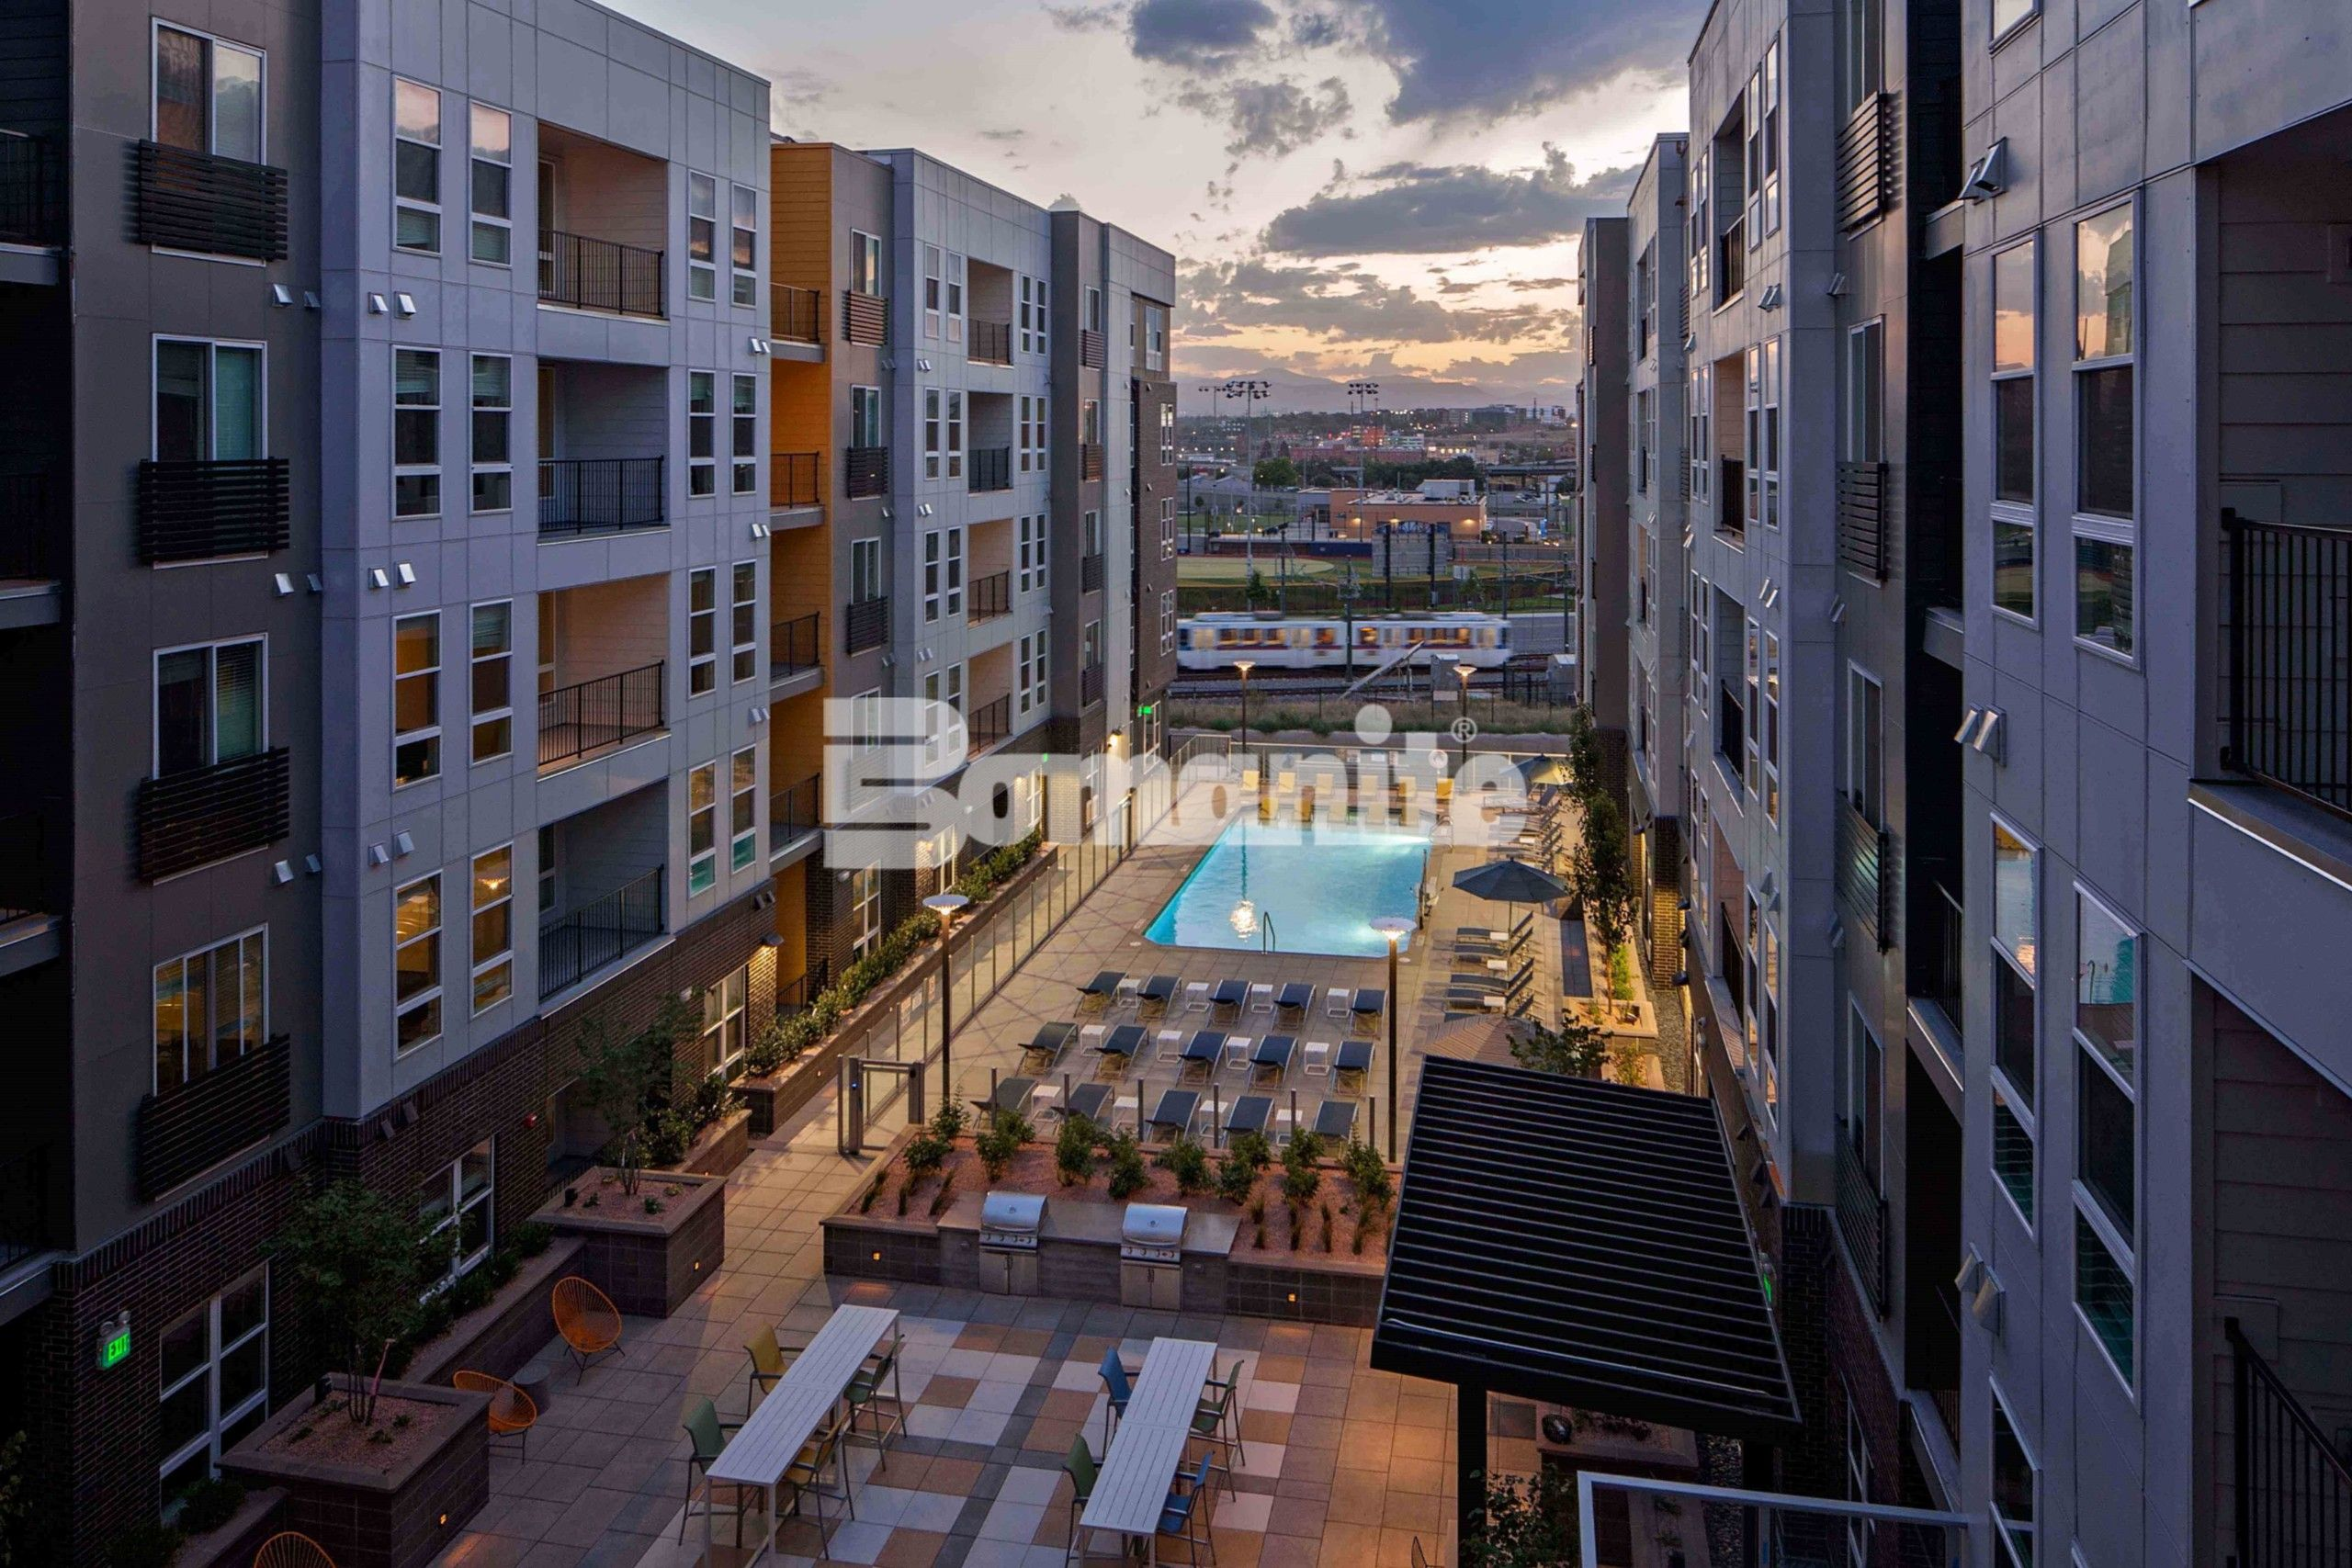 CoLab Student Living Housing Community in Denver built several outdoor gathering areas for tenants to enjoy, the pool court (Resort-Style Pool), Fire Court (Outdoor Lounge) and Water Court (Table Games) all featuring decorative concrete consisting of Bomanite Exposed Aggregate Systems, Bomanite Toppings Systems and Board Formed Concrete by Colorado Hardscapes.